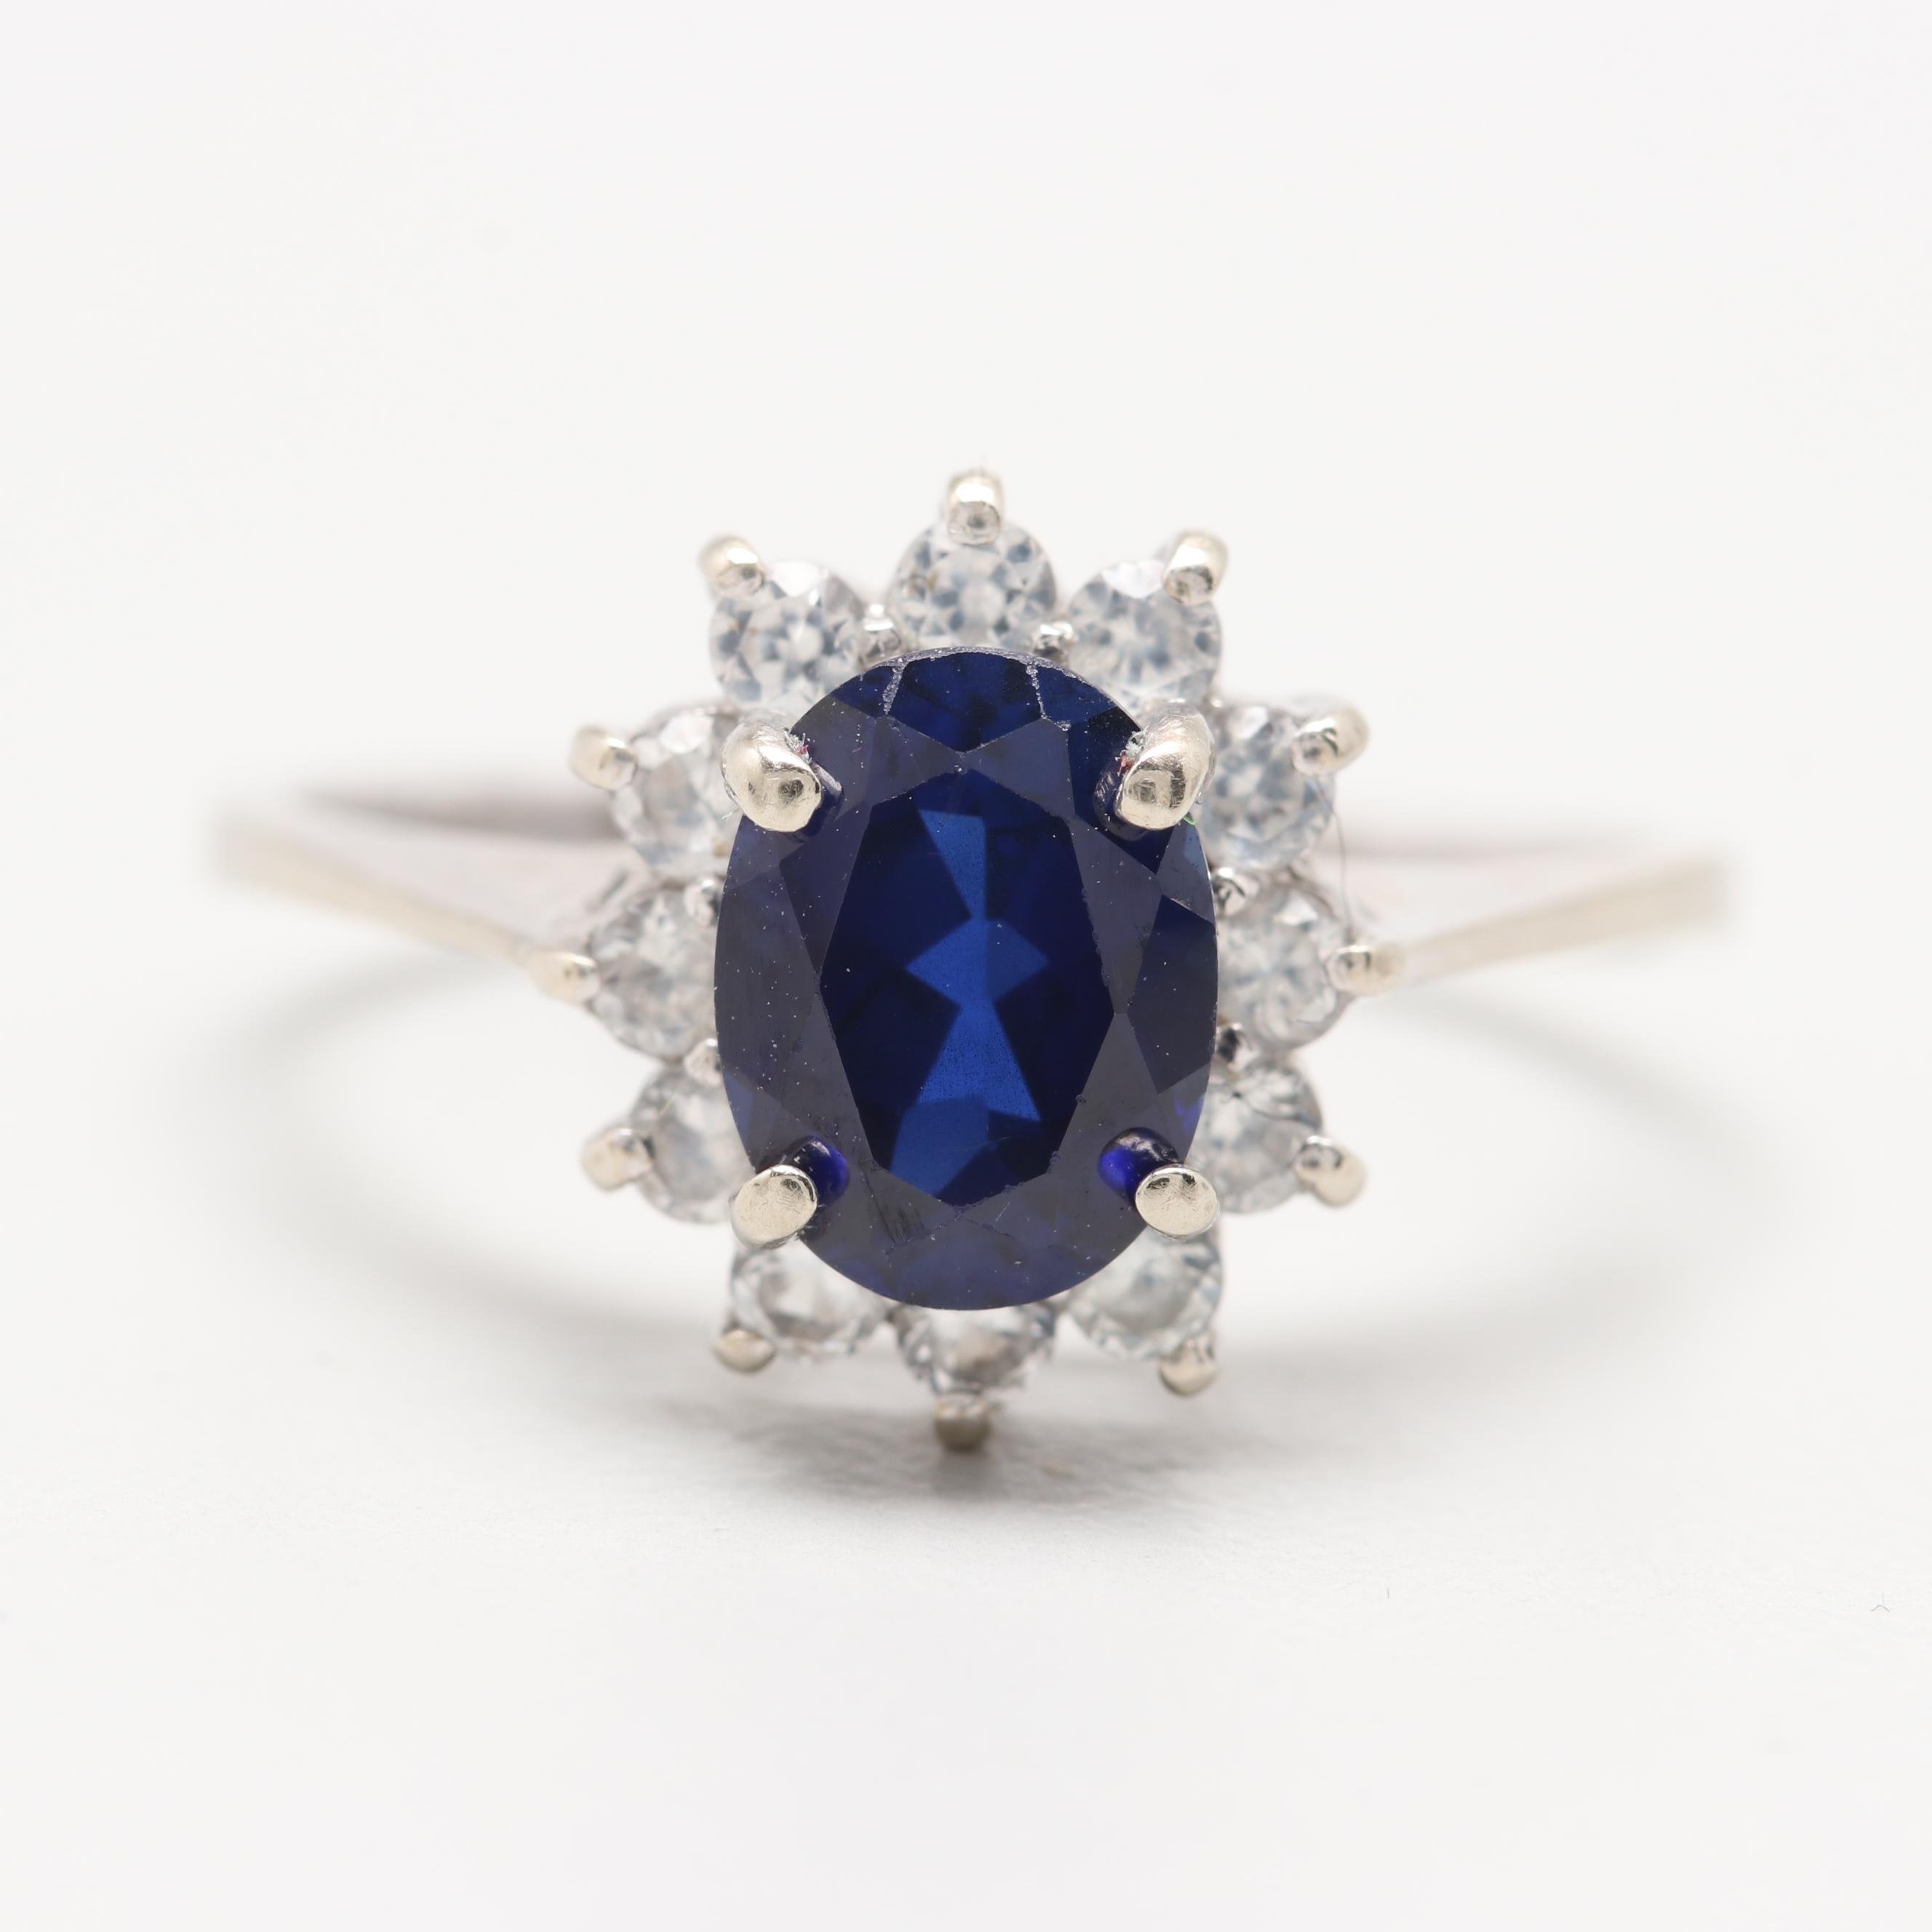 10K White Gold Synthetic Sapphire Ring